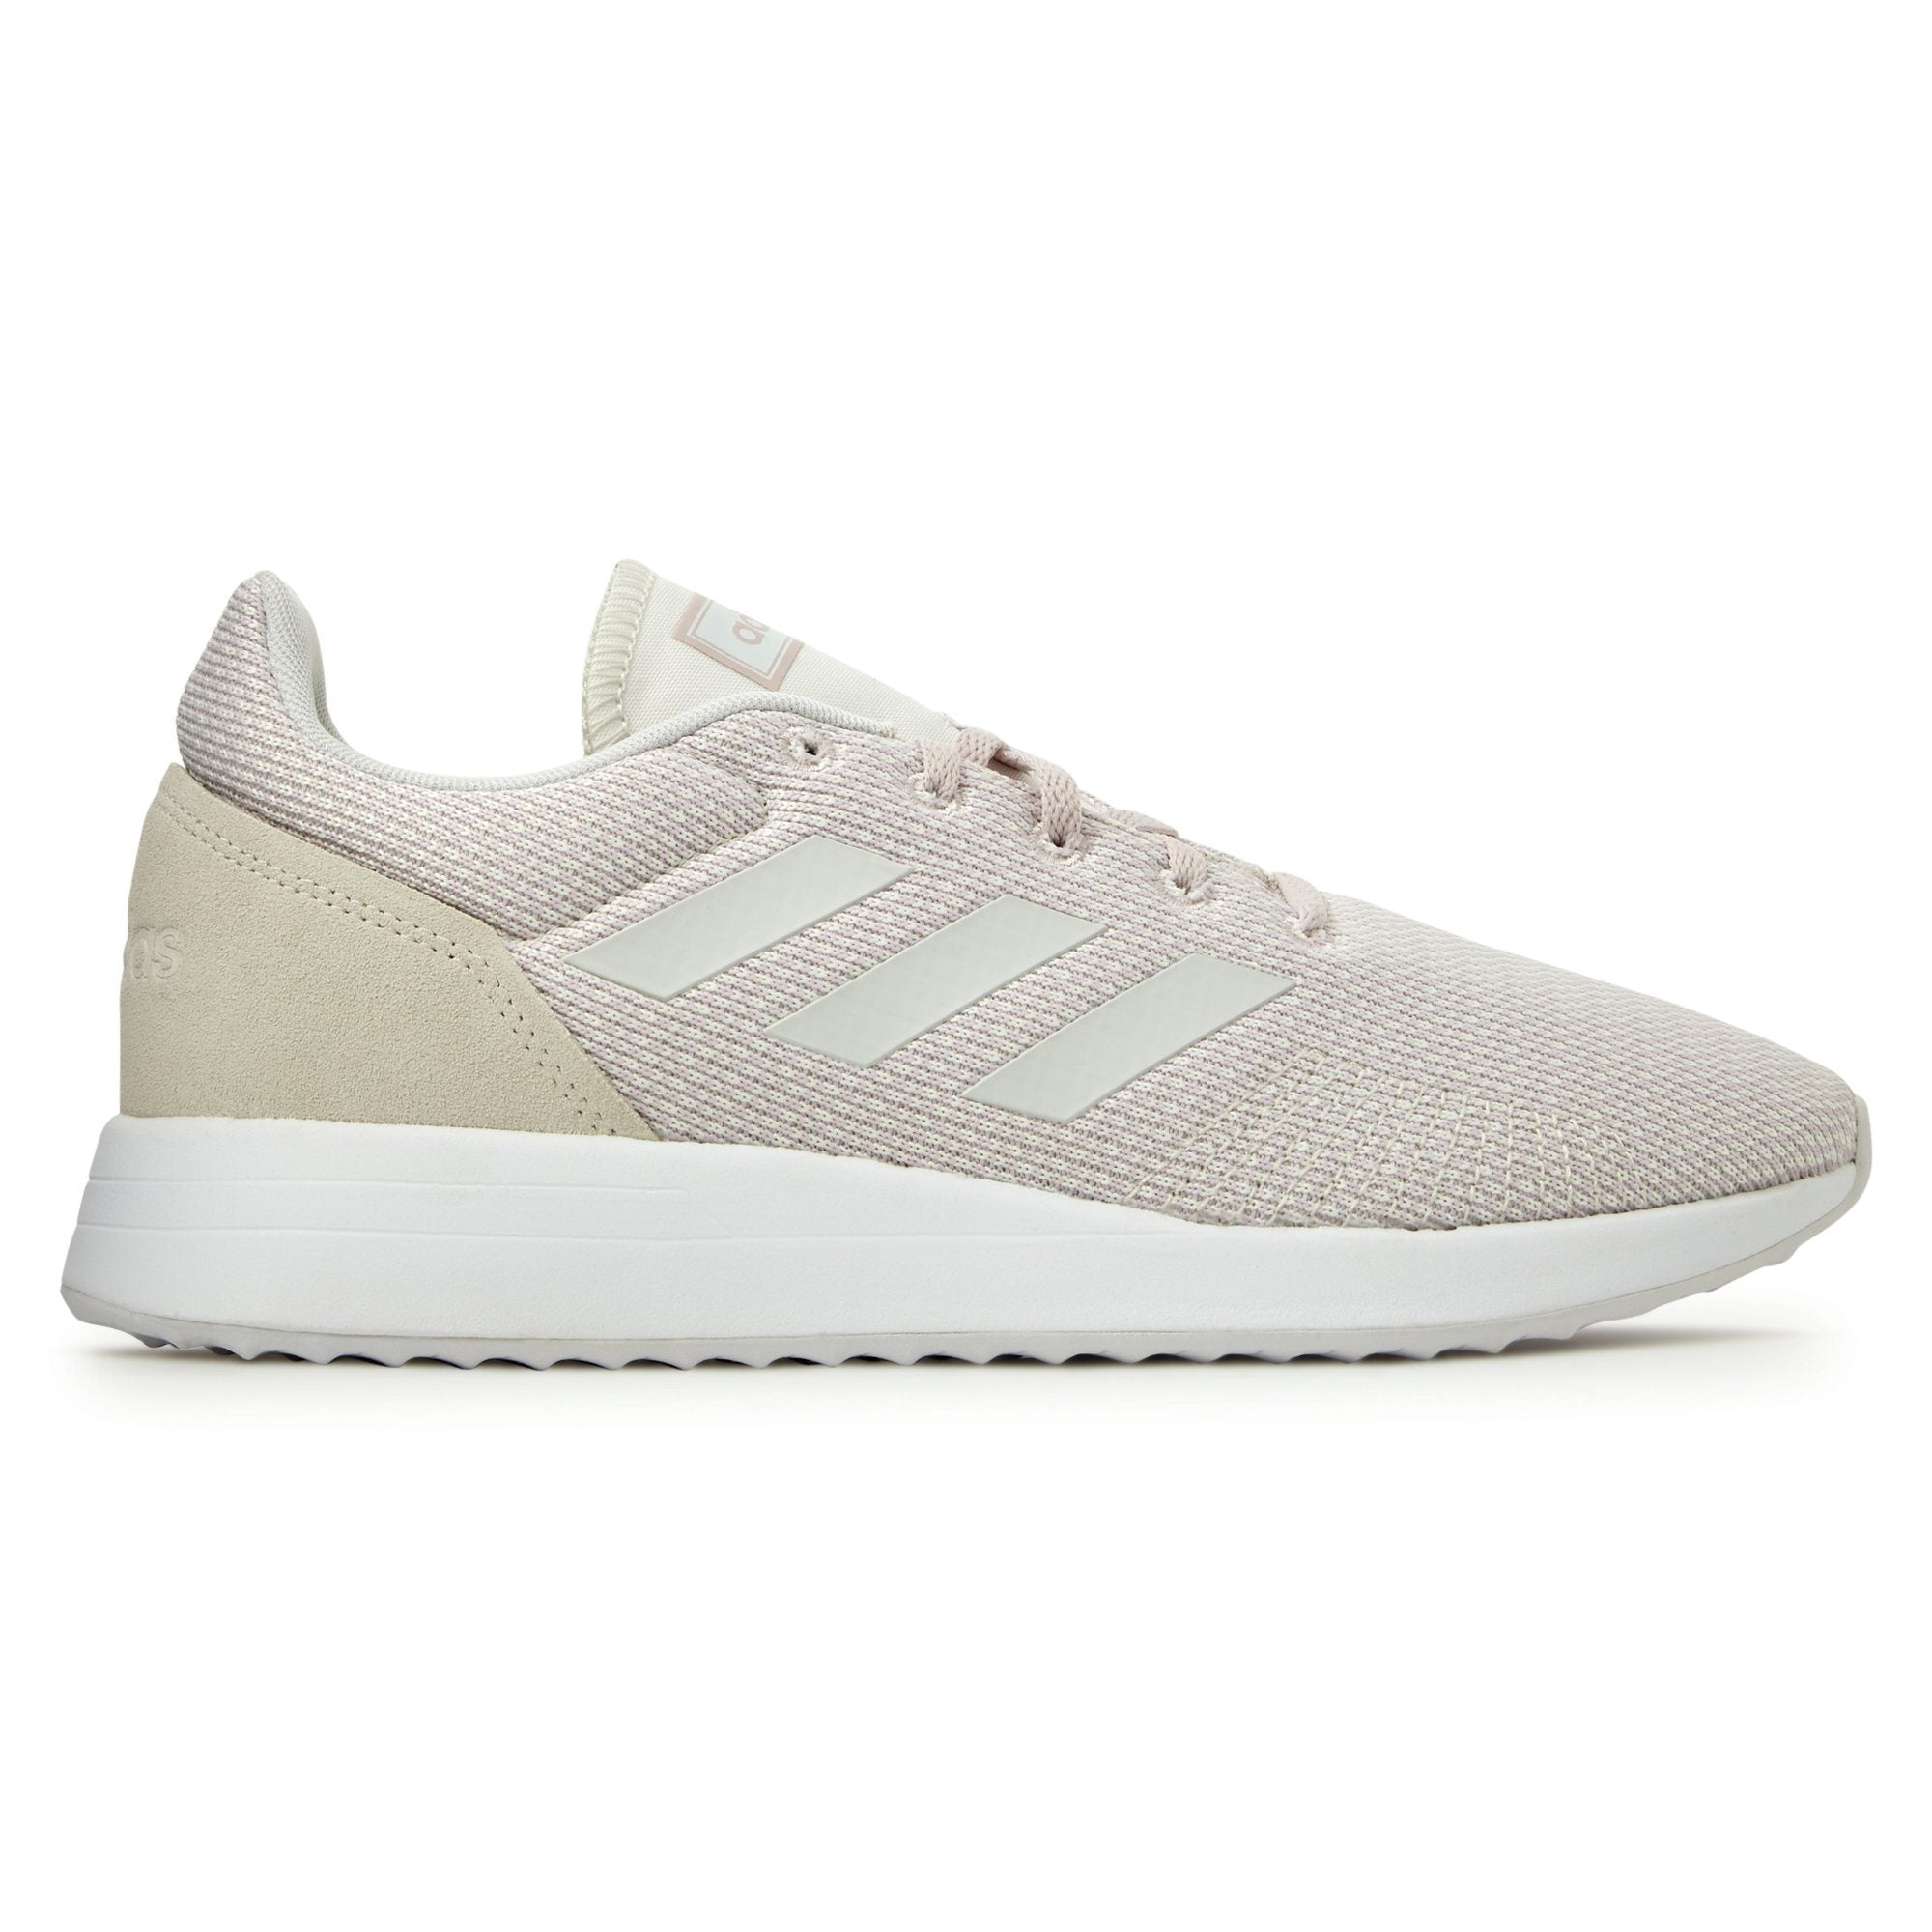 Adidas Women's Run 70s Shoes - Ice Purple / Crystal White / Light Granite Footwear Adidas  (2012421816379)